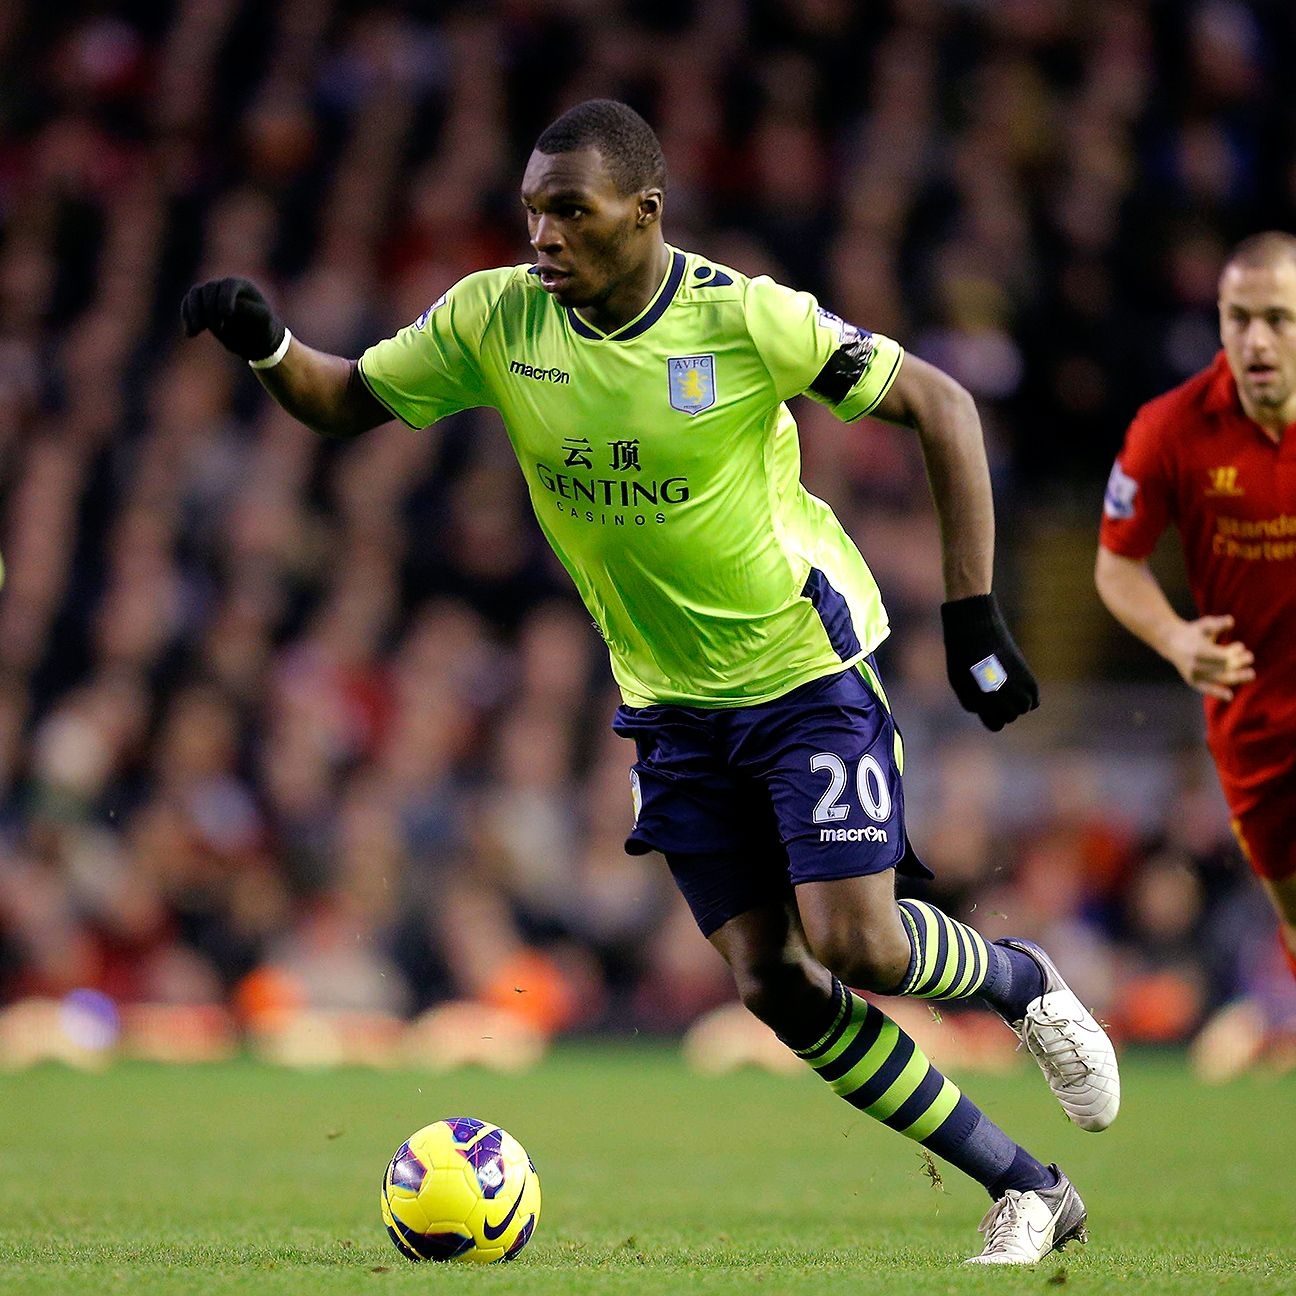 Christian Benteke set Anfield alight in his first Premier League appearance against Liverpool with a brace and an assist in Aston Villa's 3-1 win back in 2012.